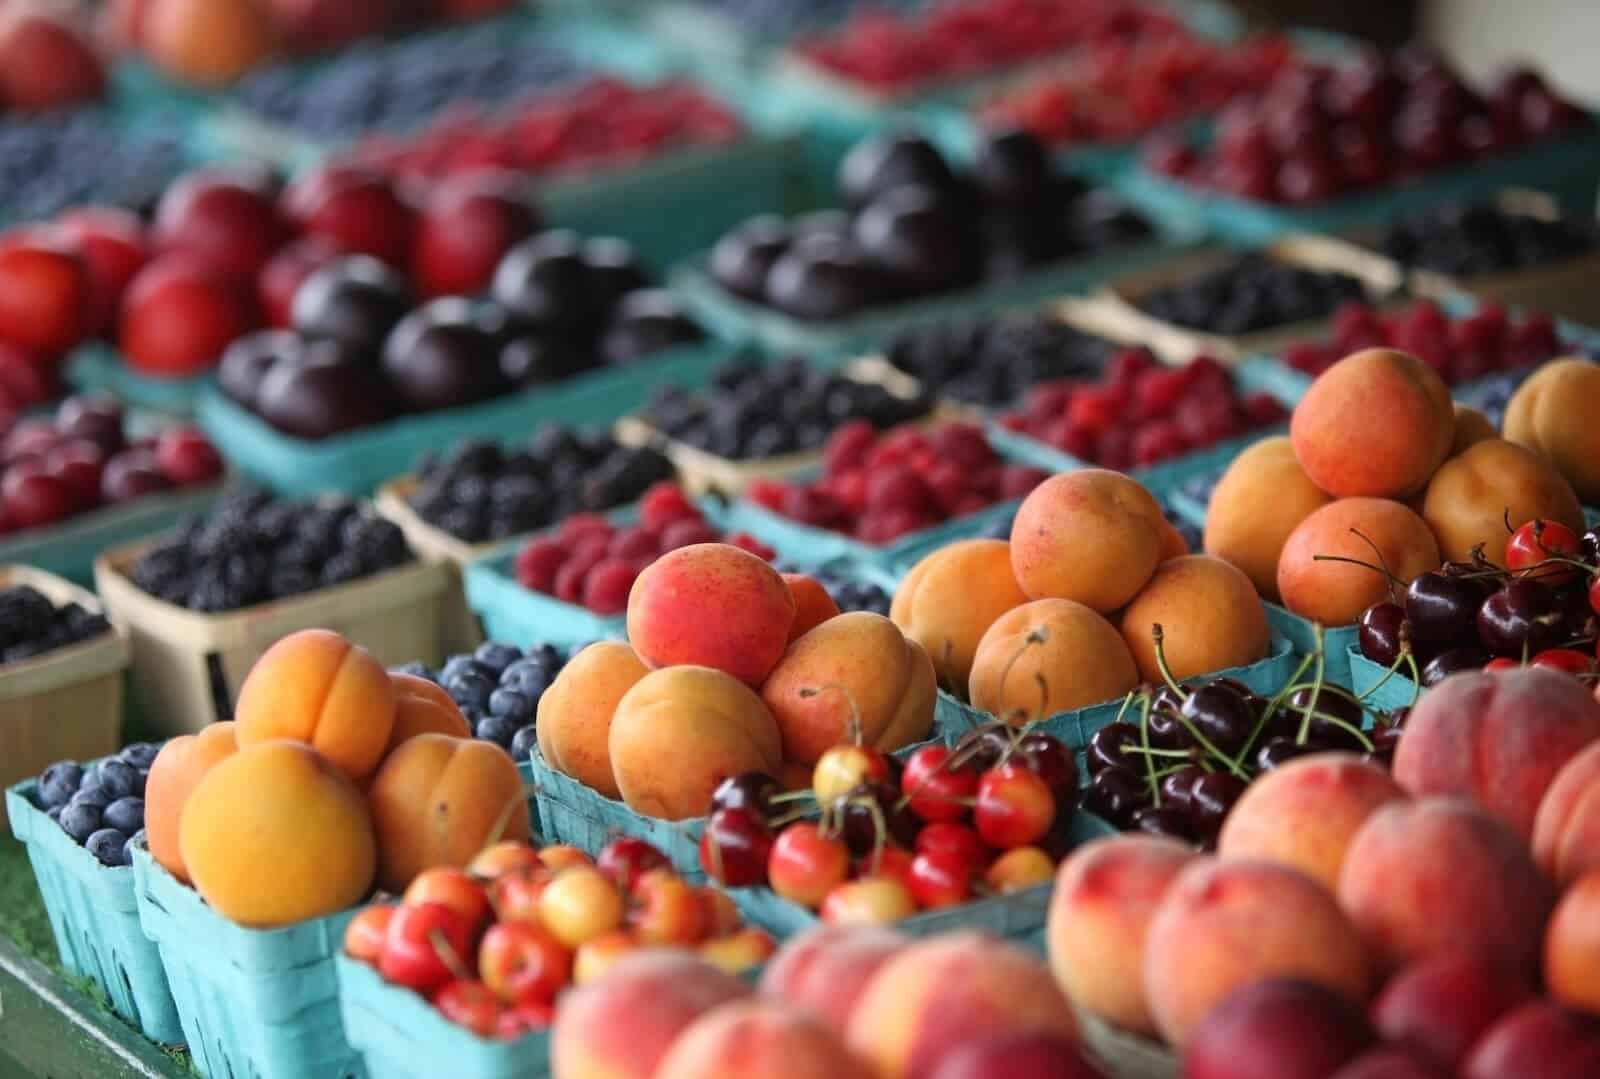 Various fruits in the market